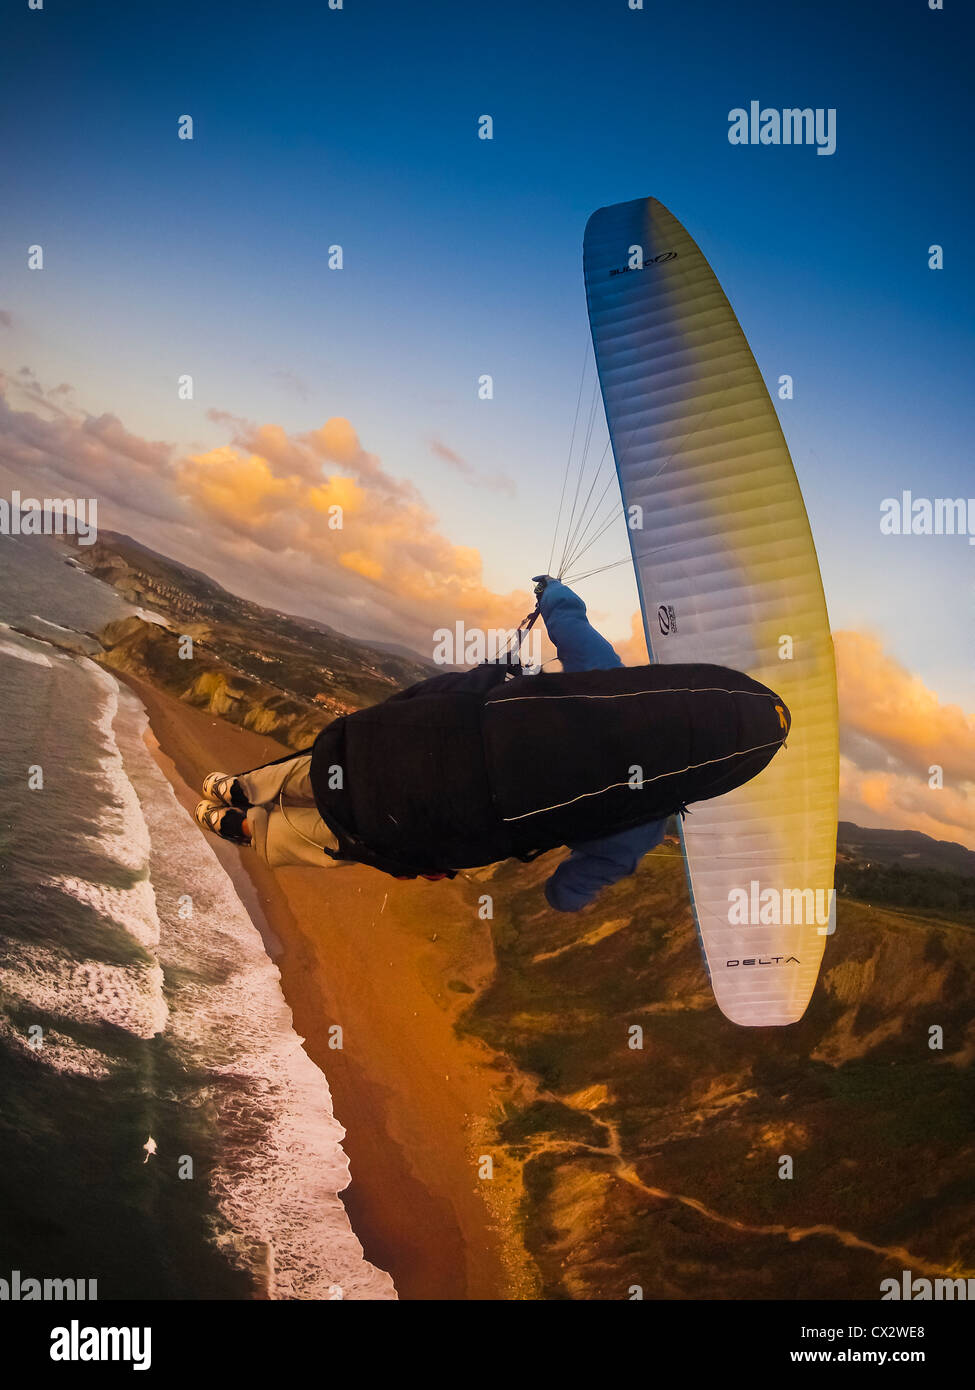 paragliding, free flying over the coast of Spain, Sopelana, Basque Country, risk, sport, dangerous,adventure, to - Stock Image